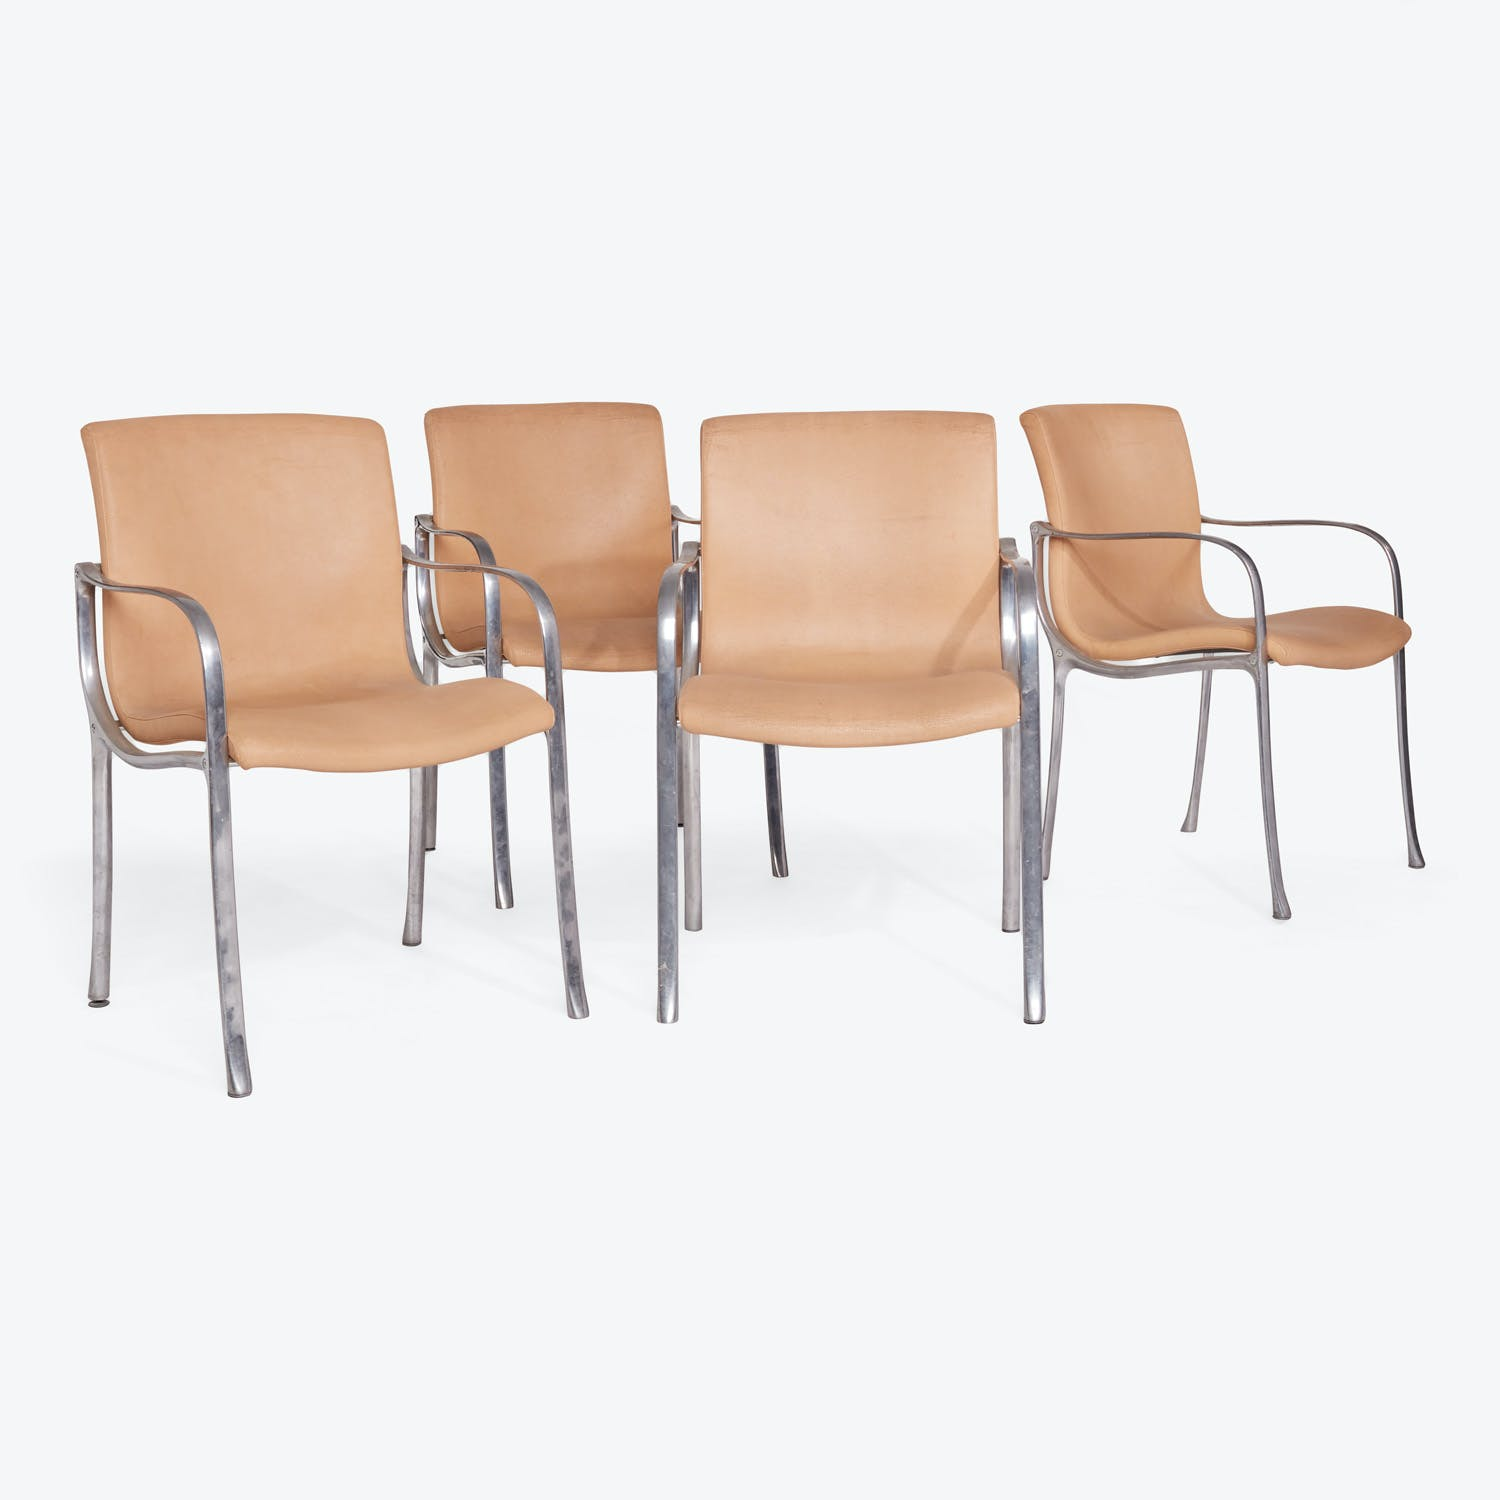 Mid-century Set of 4 Italian Leather Dining Chairs